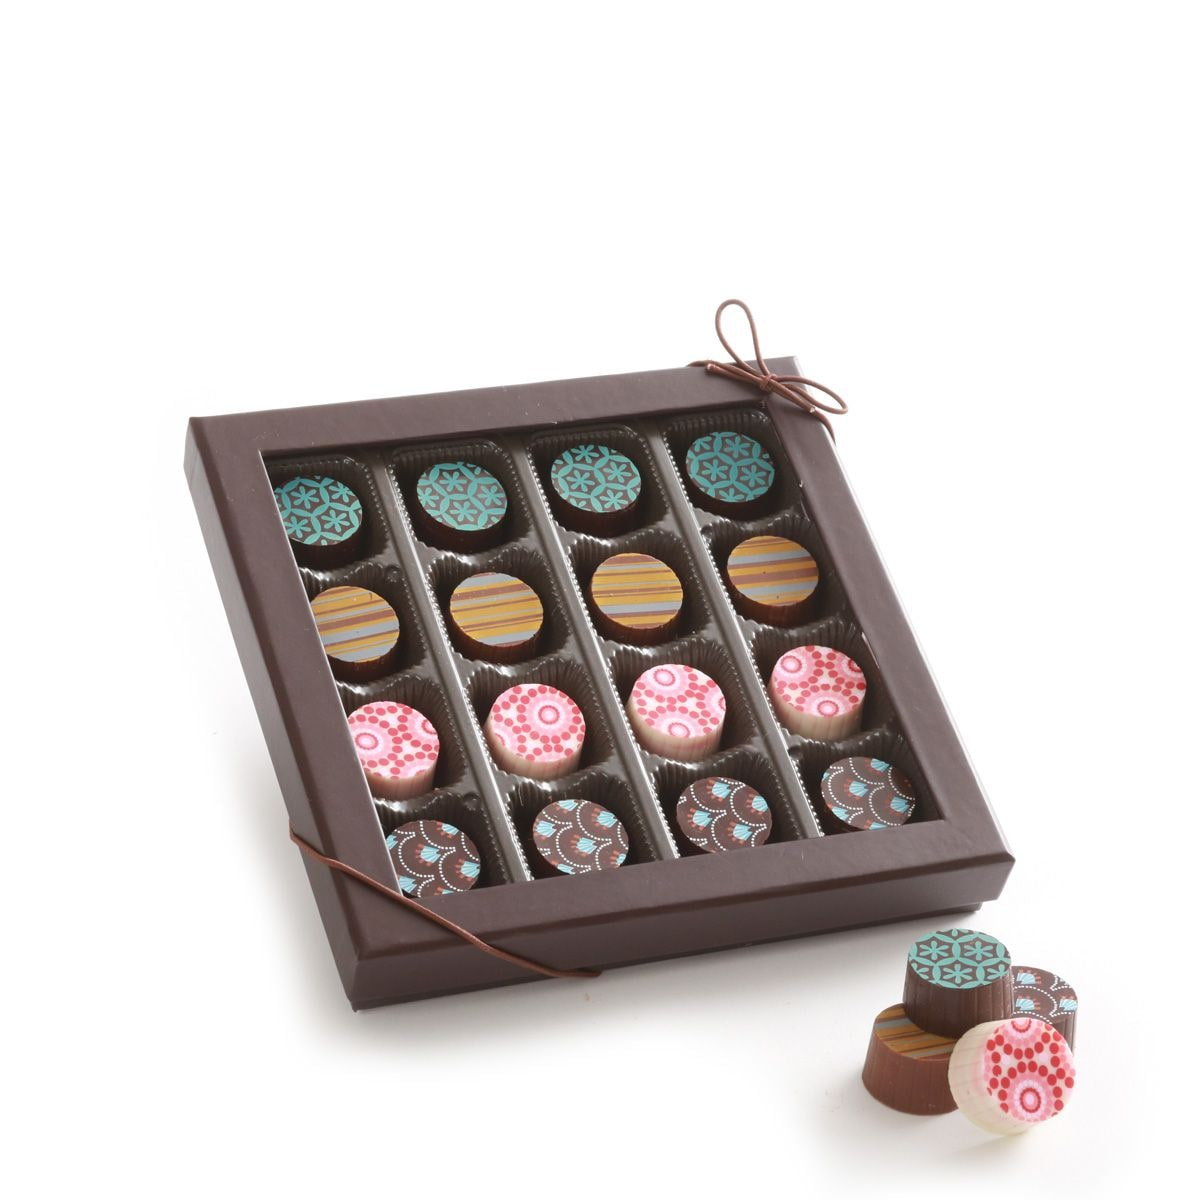 16 Piece Artisan Truffle Box - 7oz